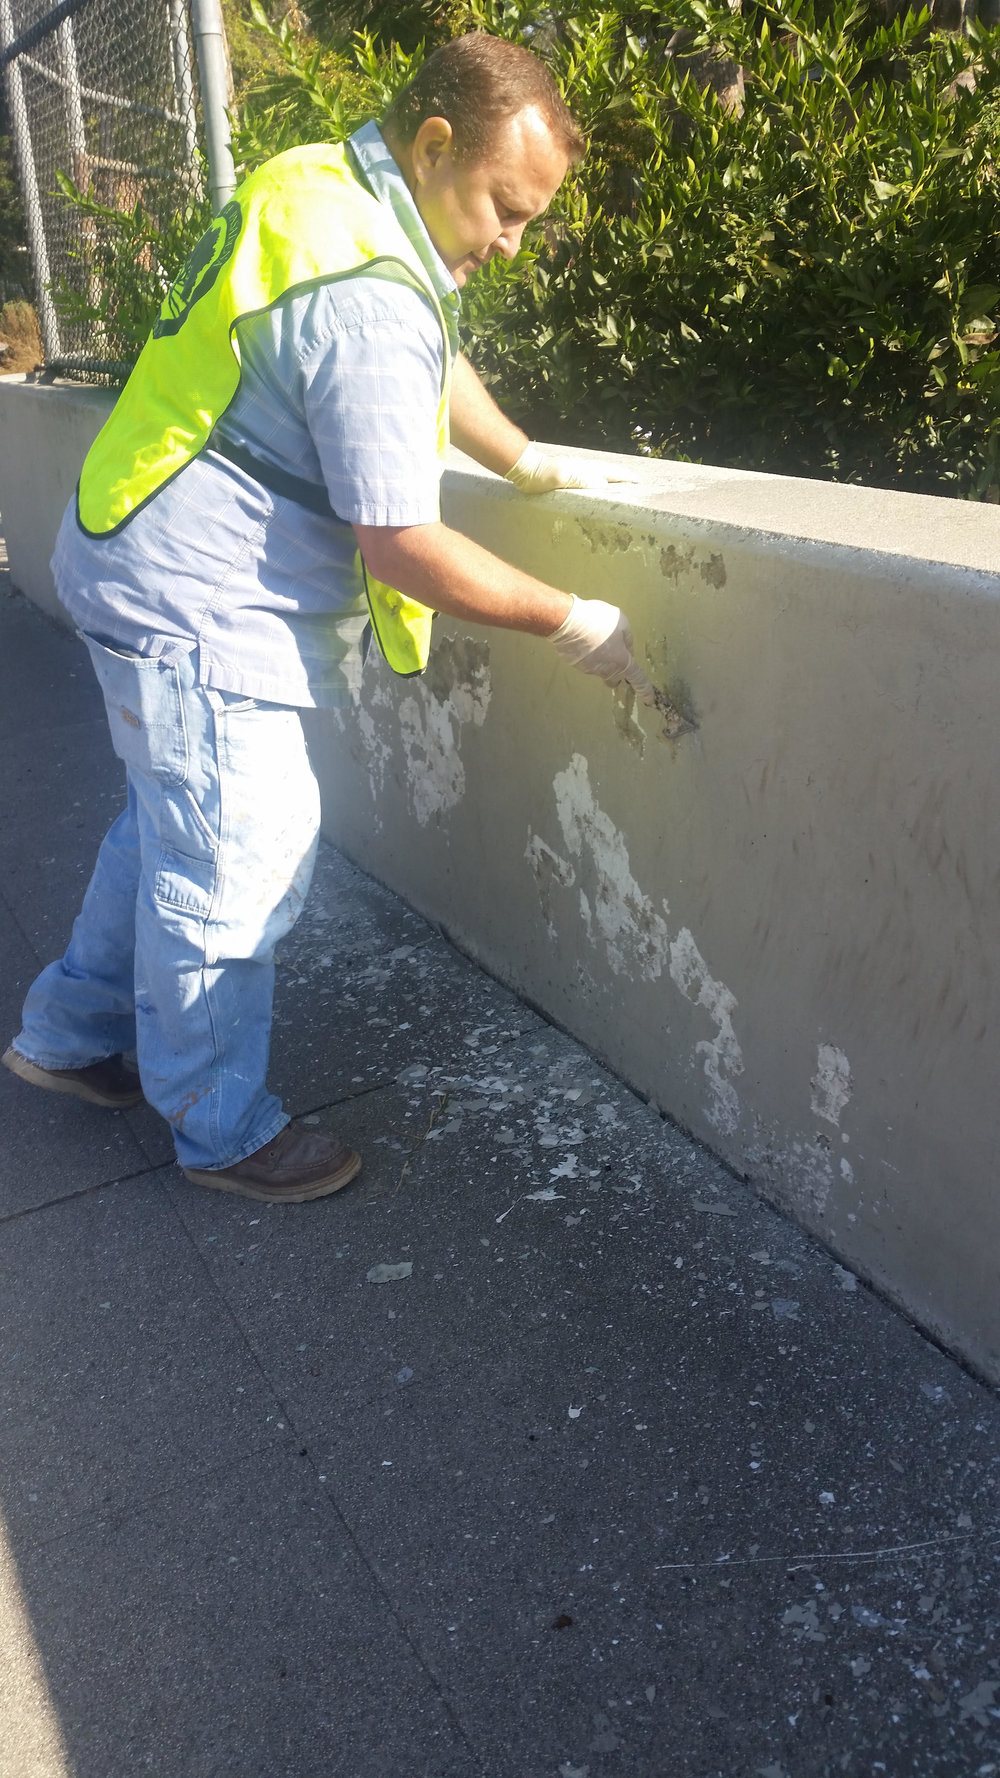 Painting the overpass